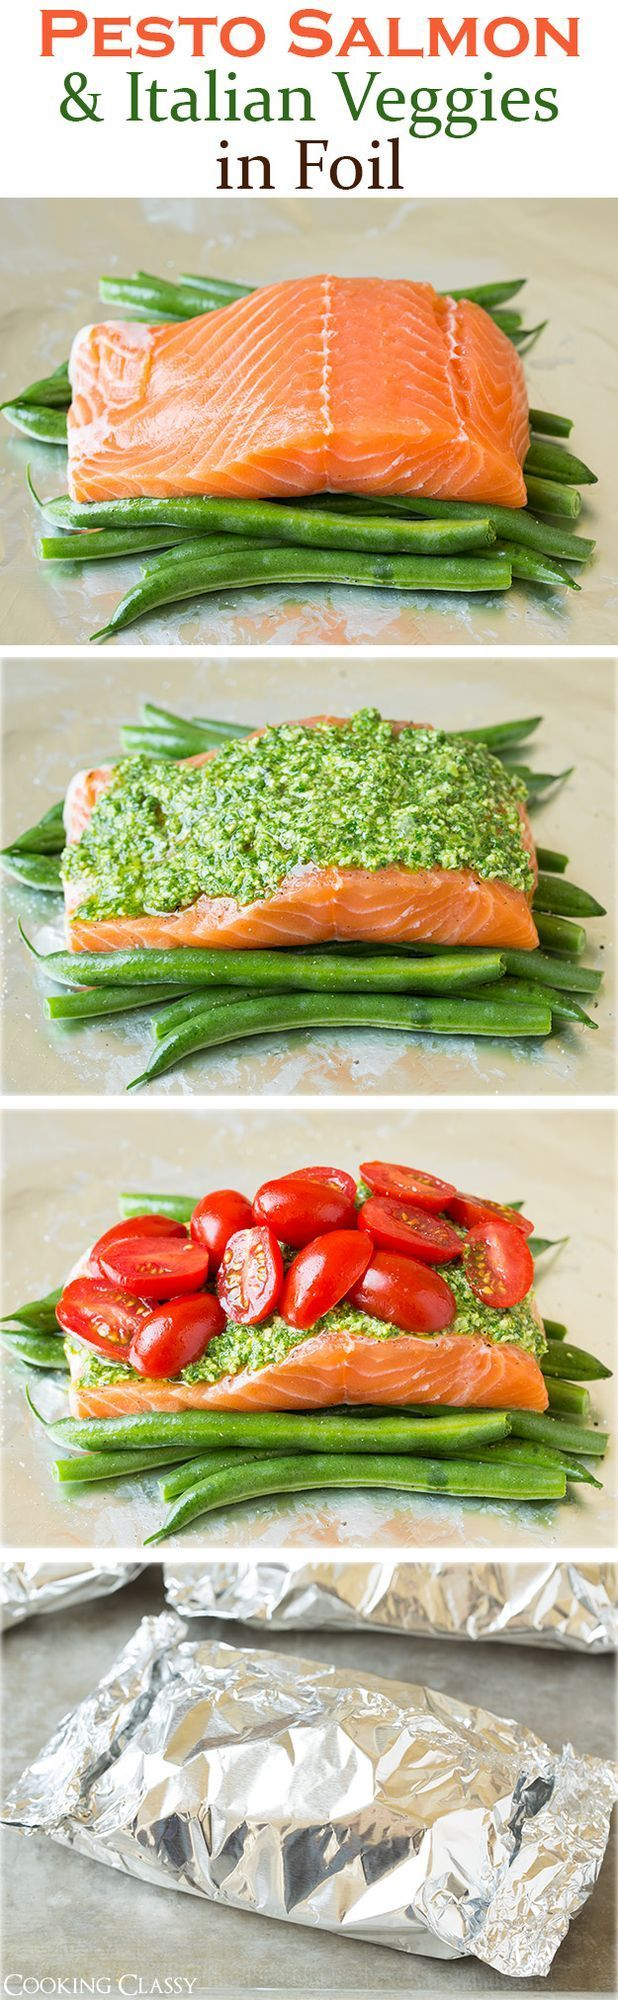 What's not to love about dinners in foil right? Easy to make, easy clean up, and they taste delicious! This Pesto Salmon with Italian Veggies is no exception! It's full of flavor and you end with perf